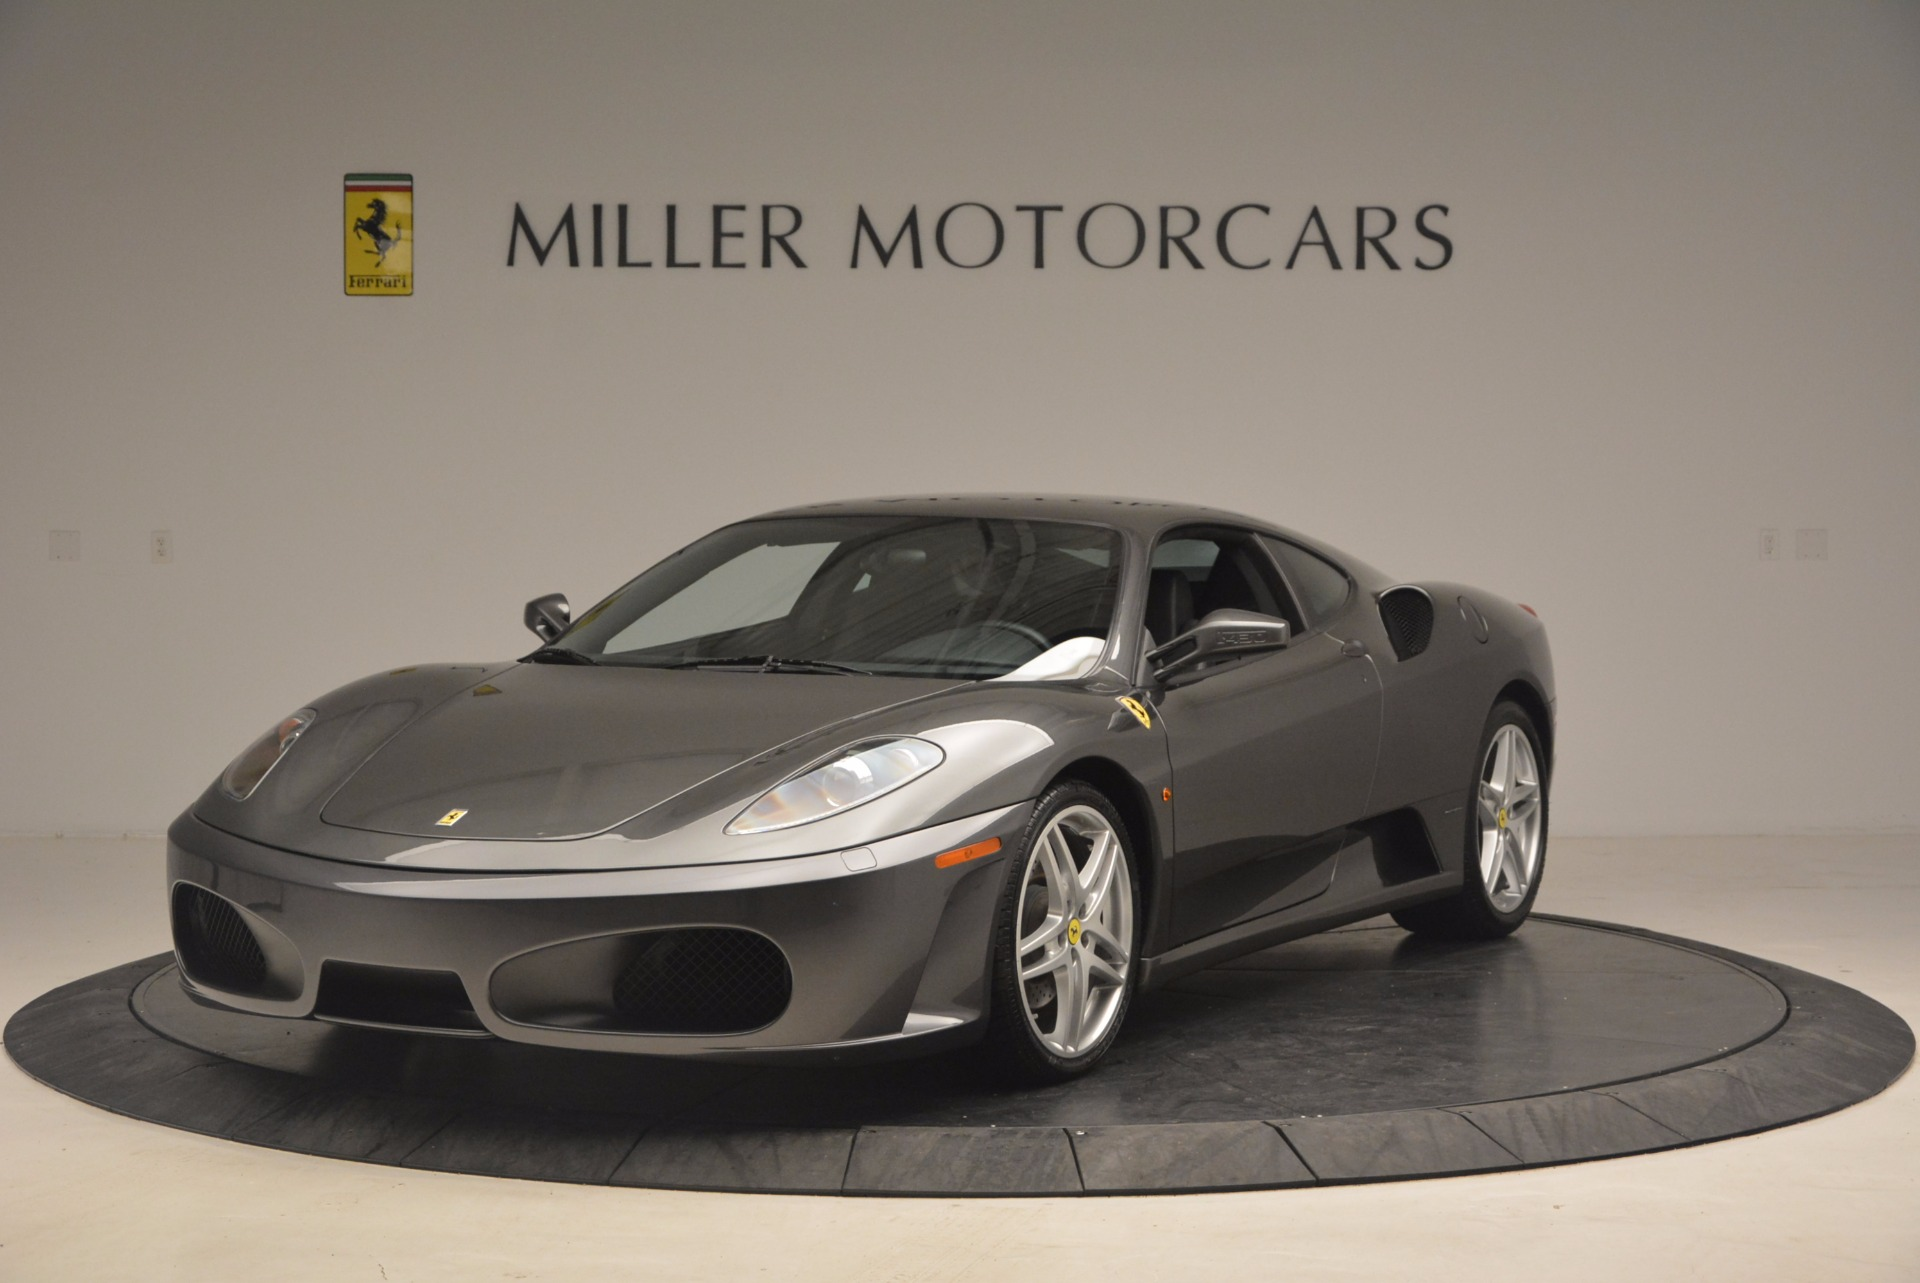 Used 2005 Ferrari F430 6-Speed Manual For Sale In Greenwich, CT. Alfa Romeo of Greenwich, 4391